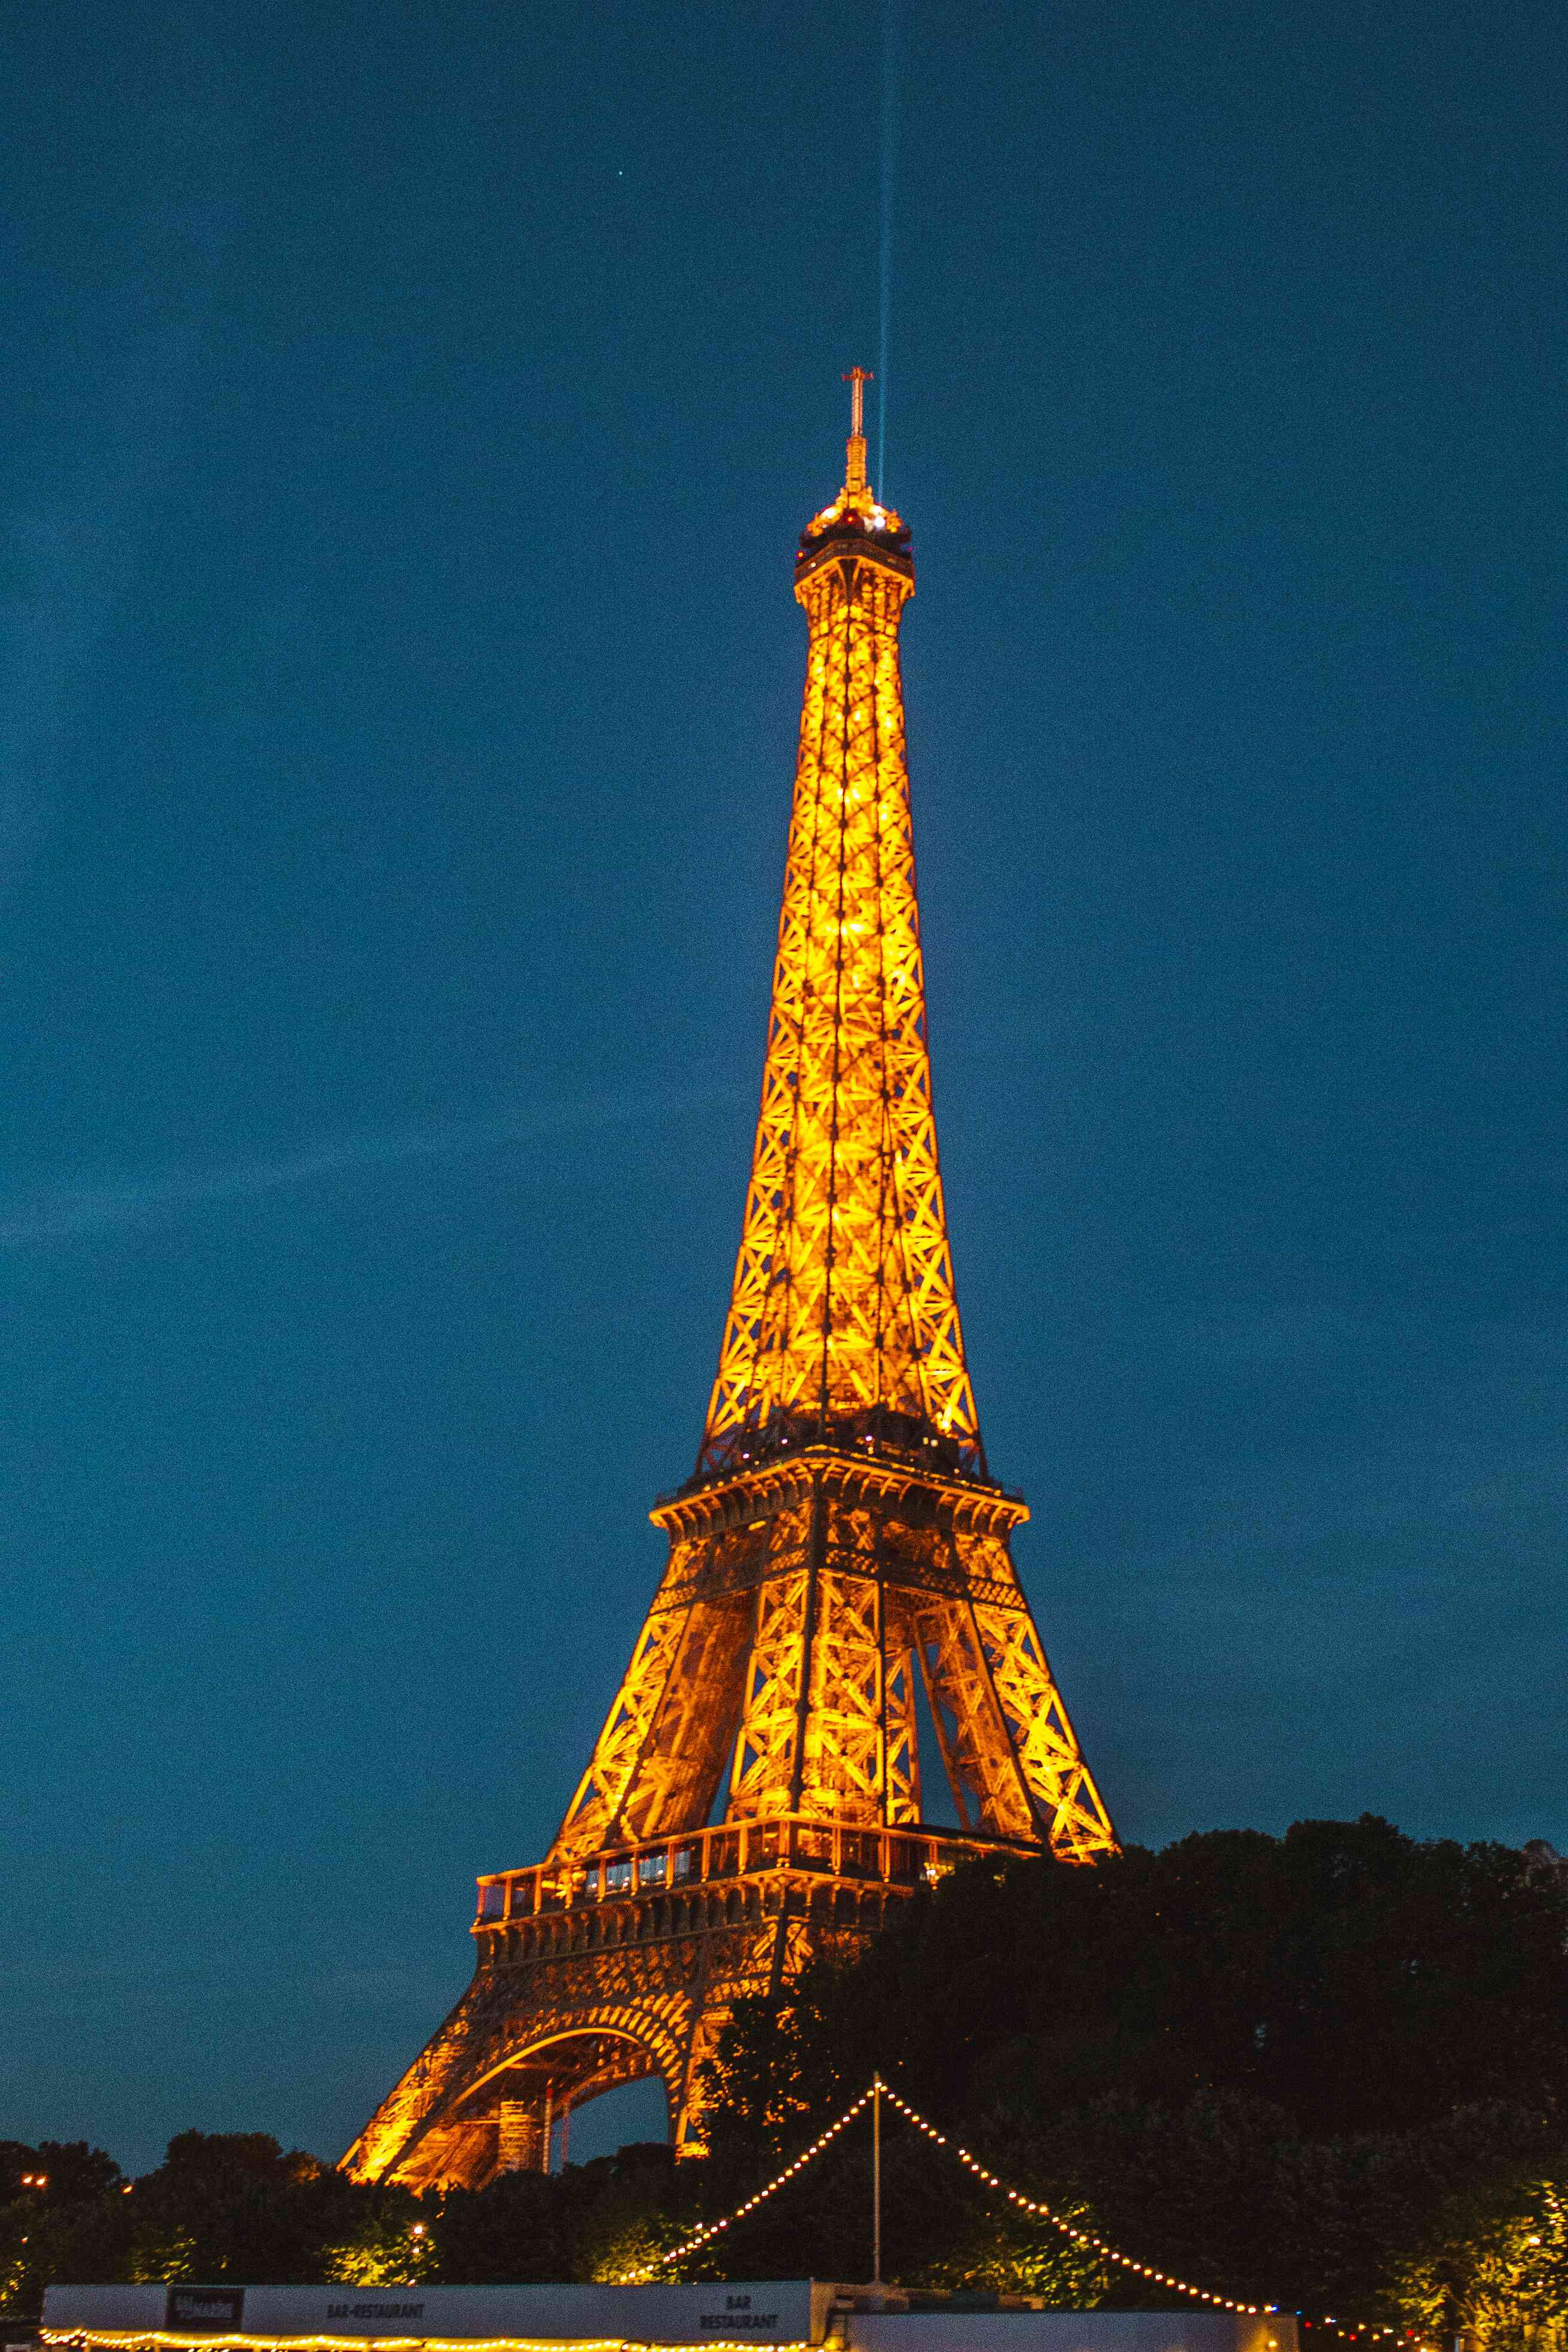 The eiffel tower lit up at night